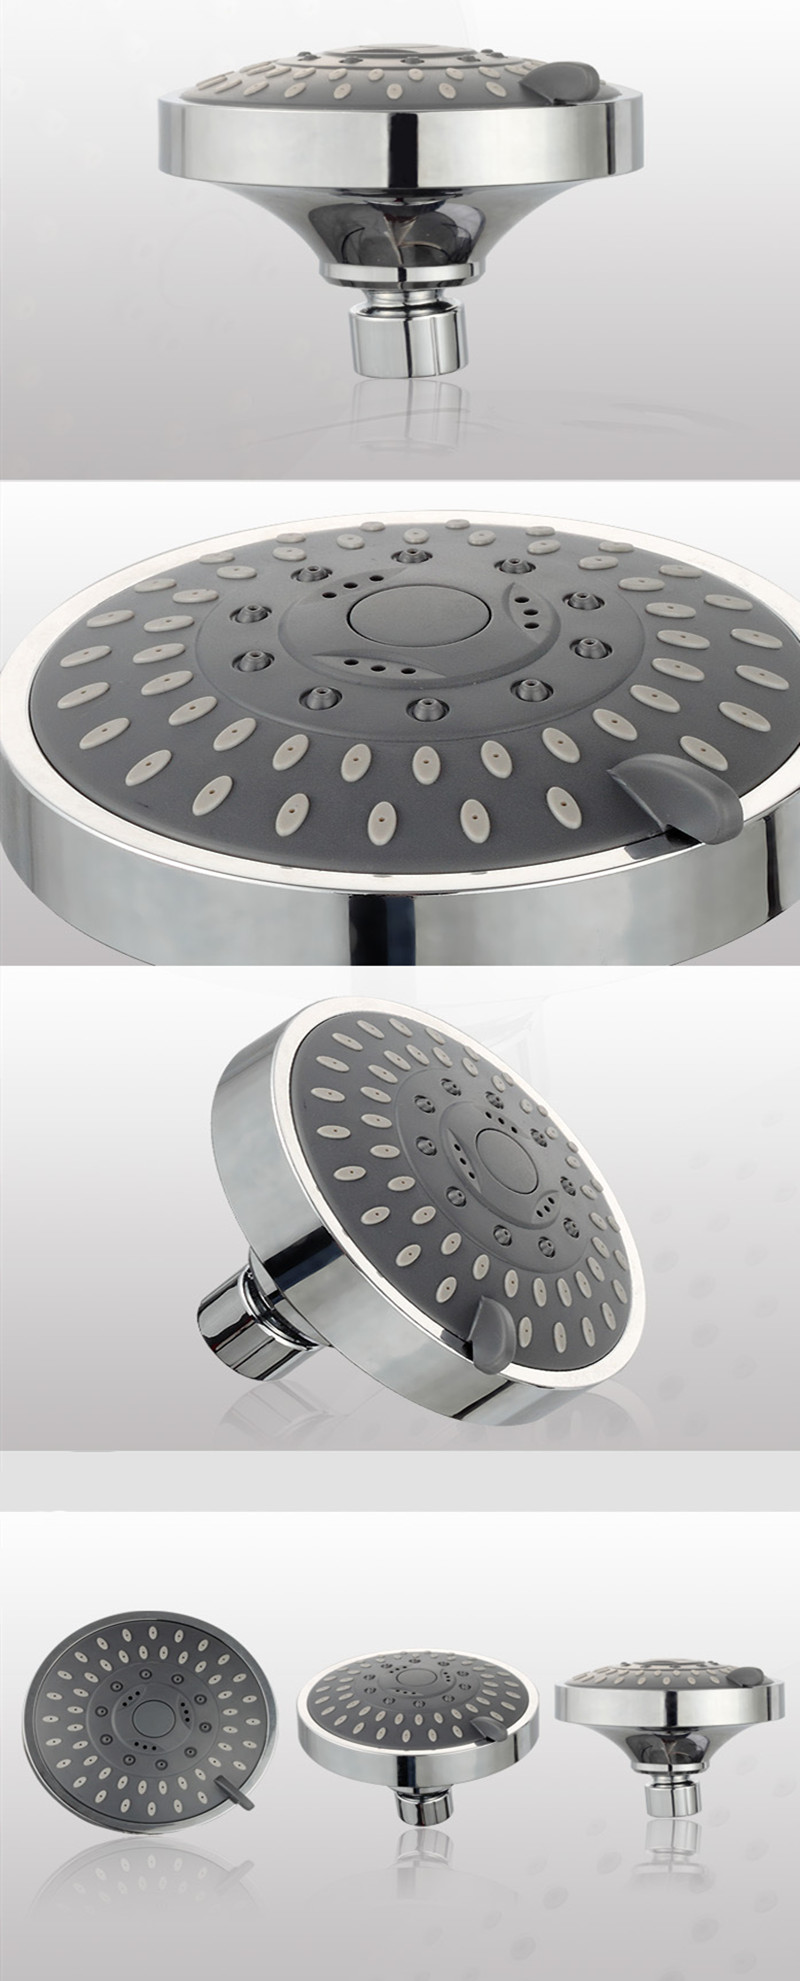 3 Way Shower Head Diverter With Mount Combo Show Arm Mounted Valve Fix Bracket 5 Functions Top Spray Shower Set